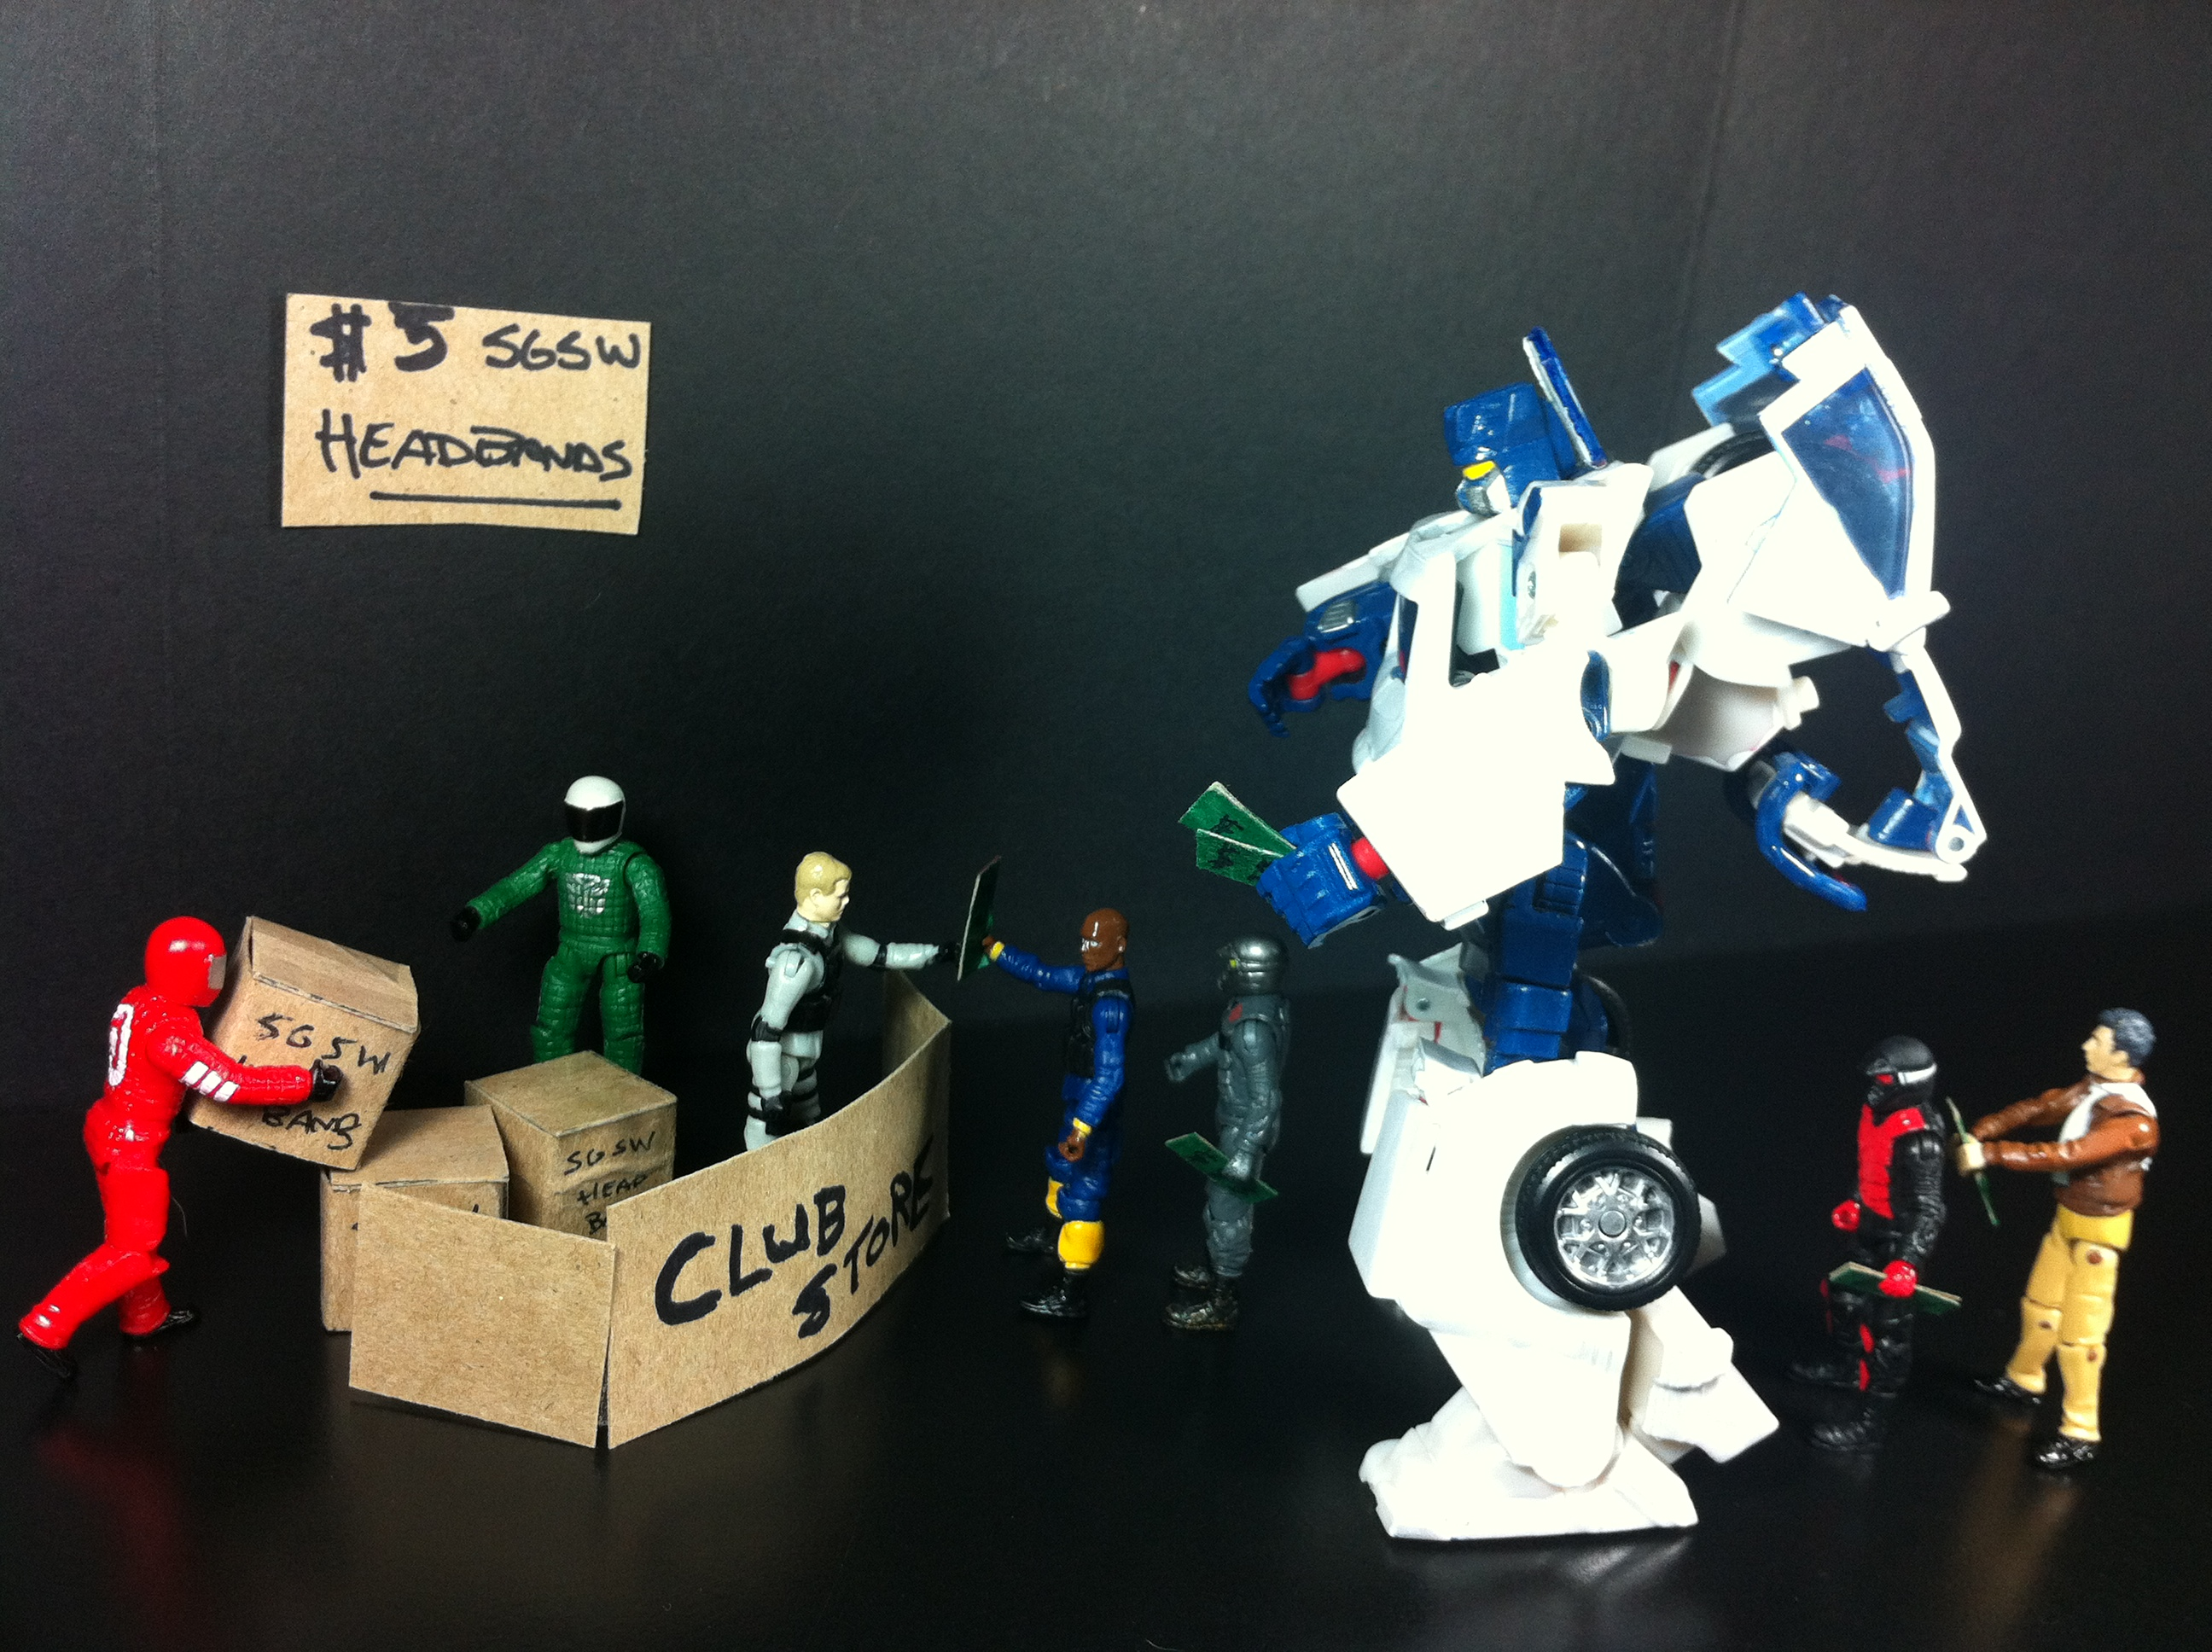 SG Soundwave waits in line for his headband at Botcon 2012